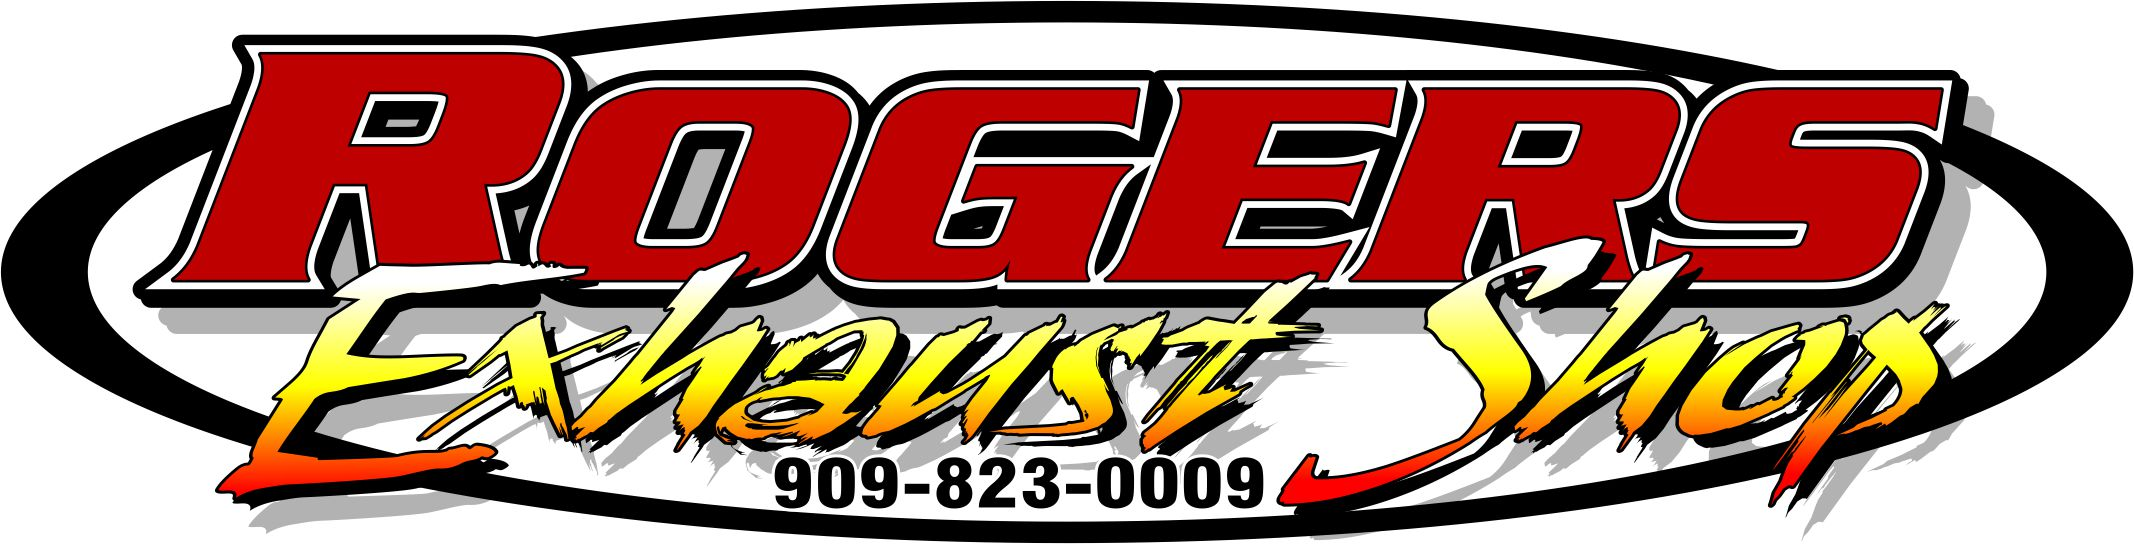 ROGERS EXHAUST SHOP